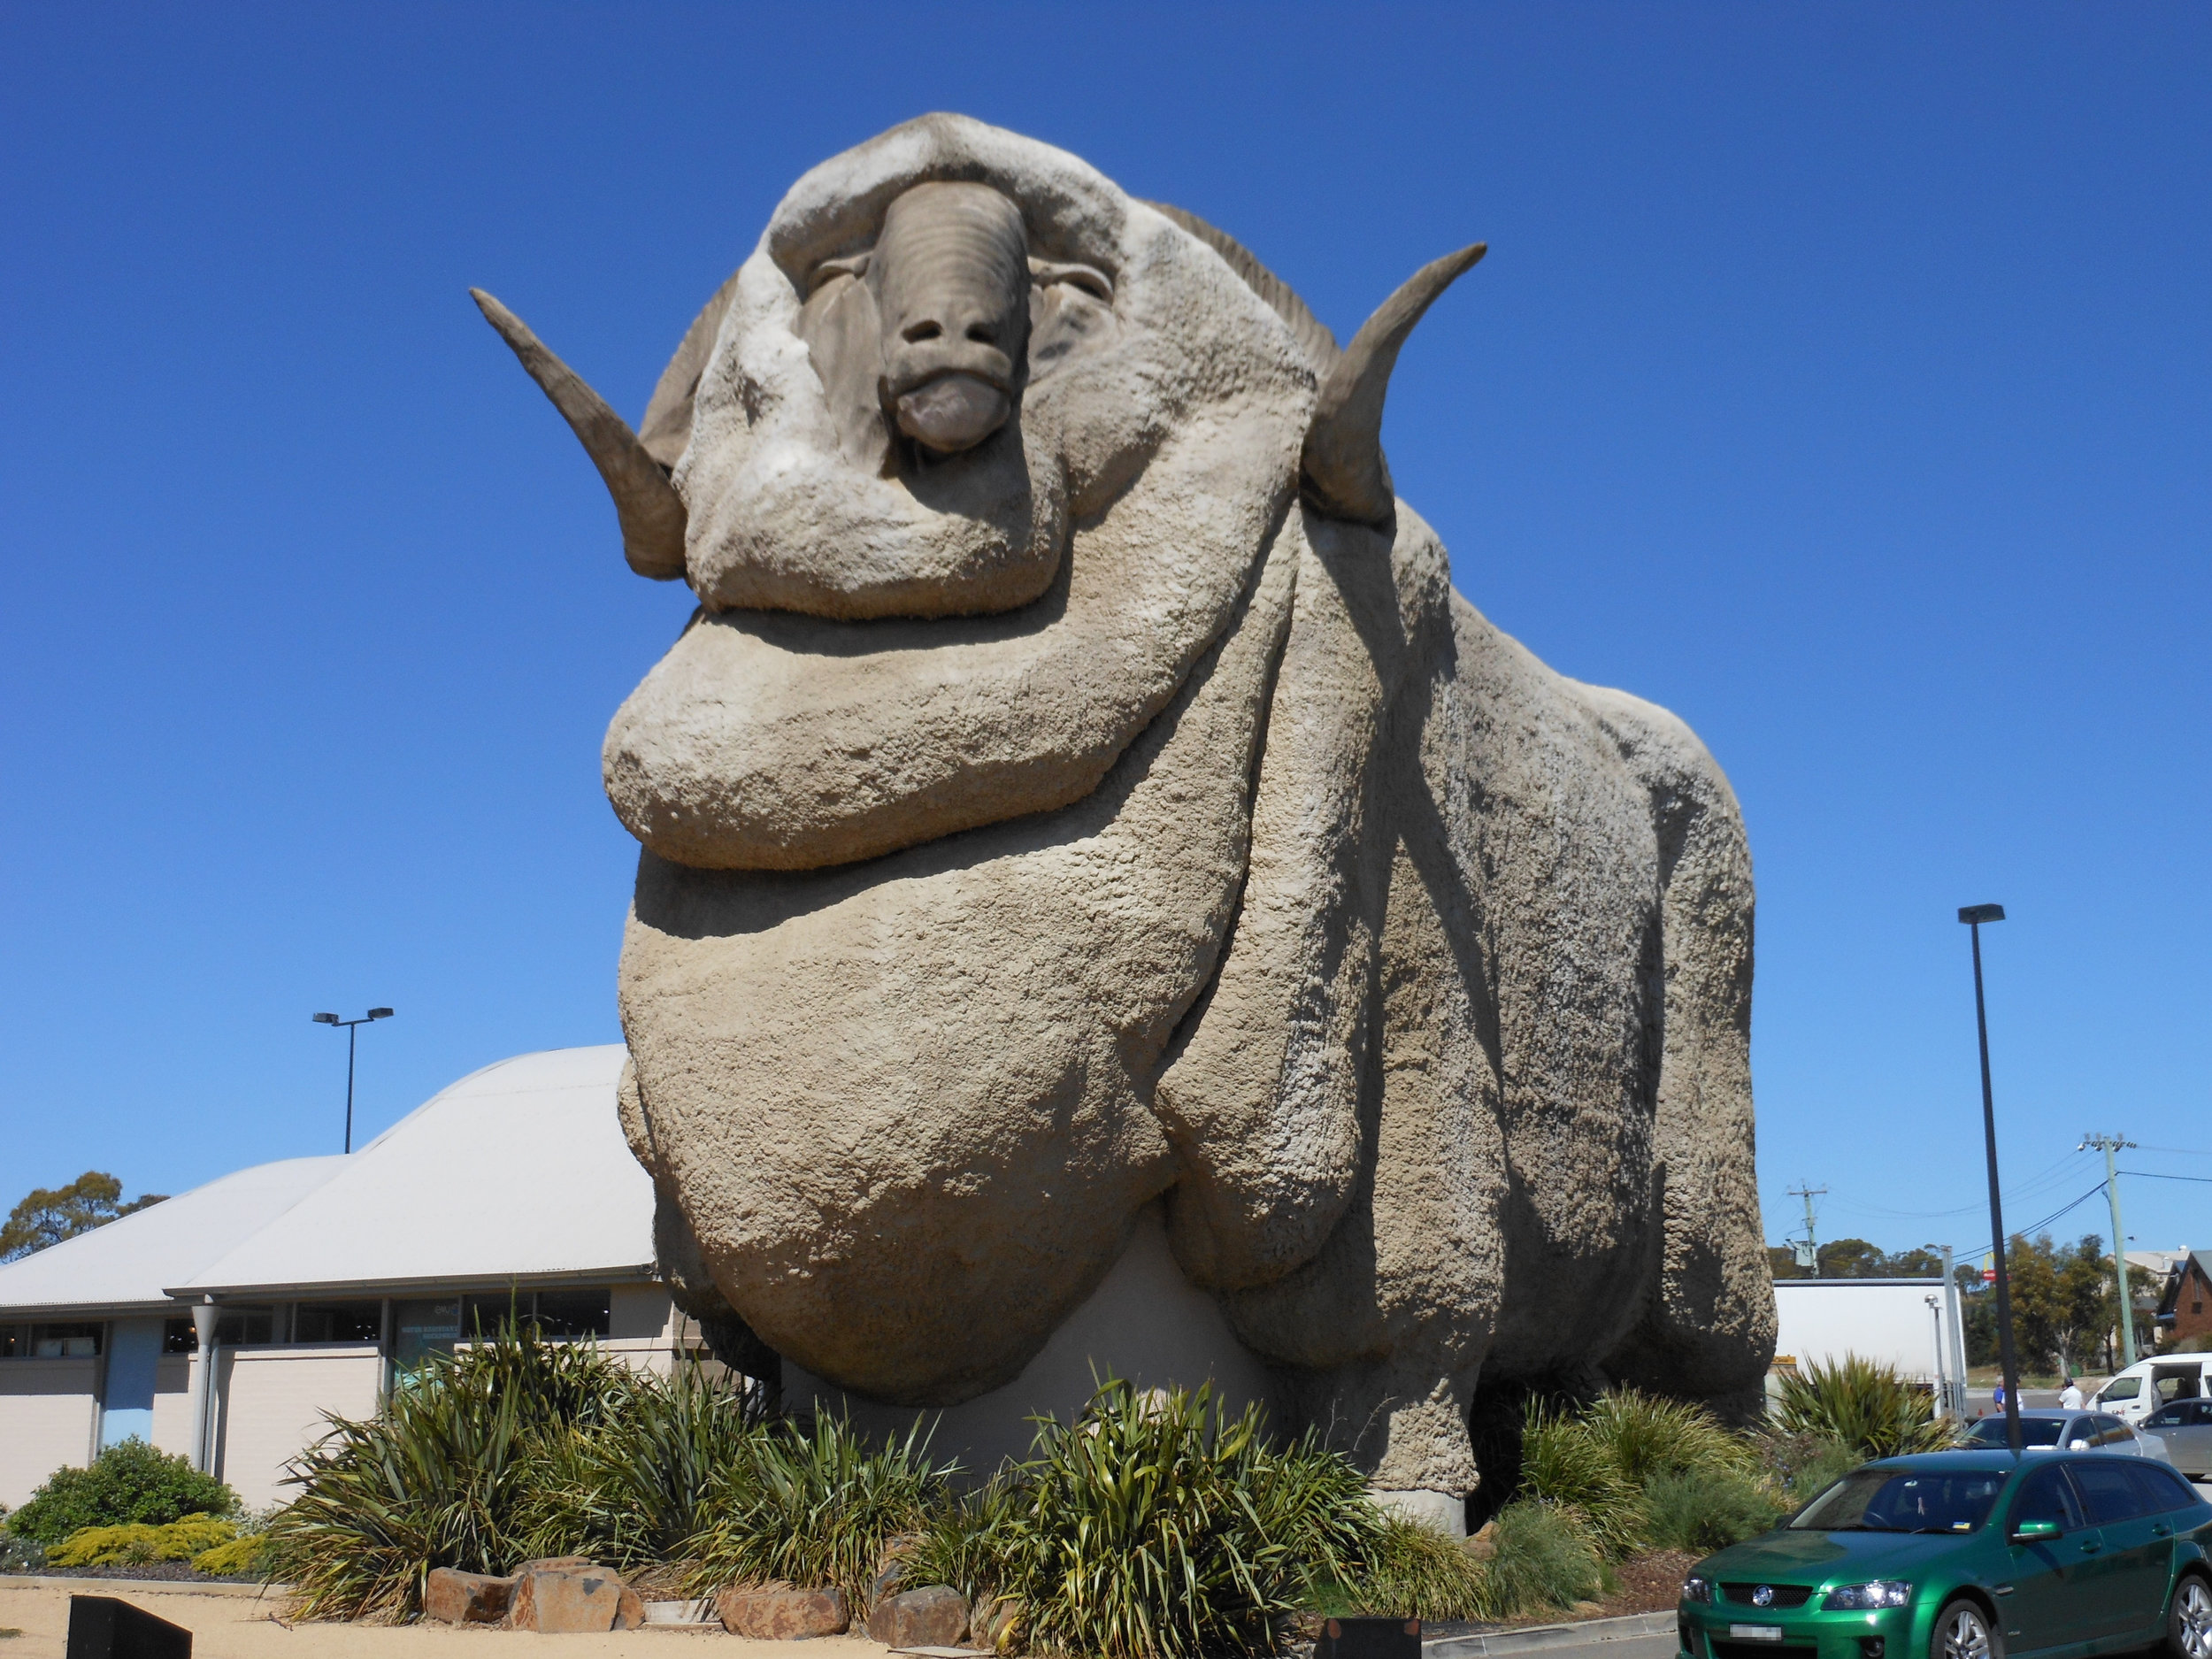 8. Big things - We love a bit of novelty architecture here in Australia. There are more than 150 big